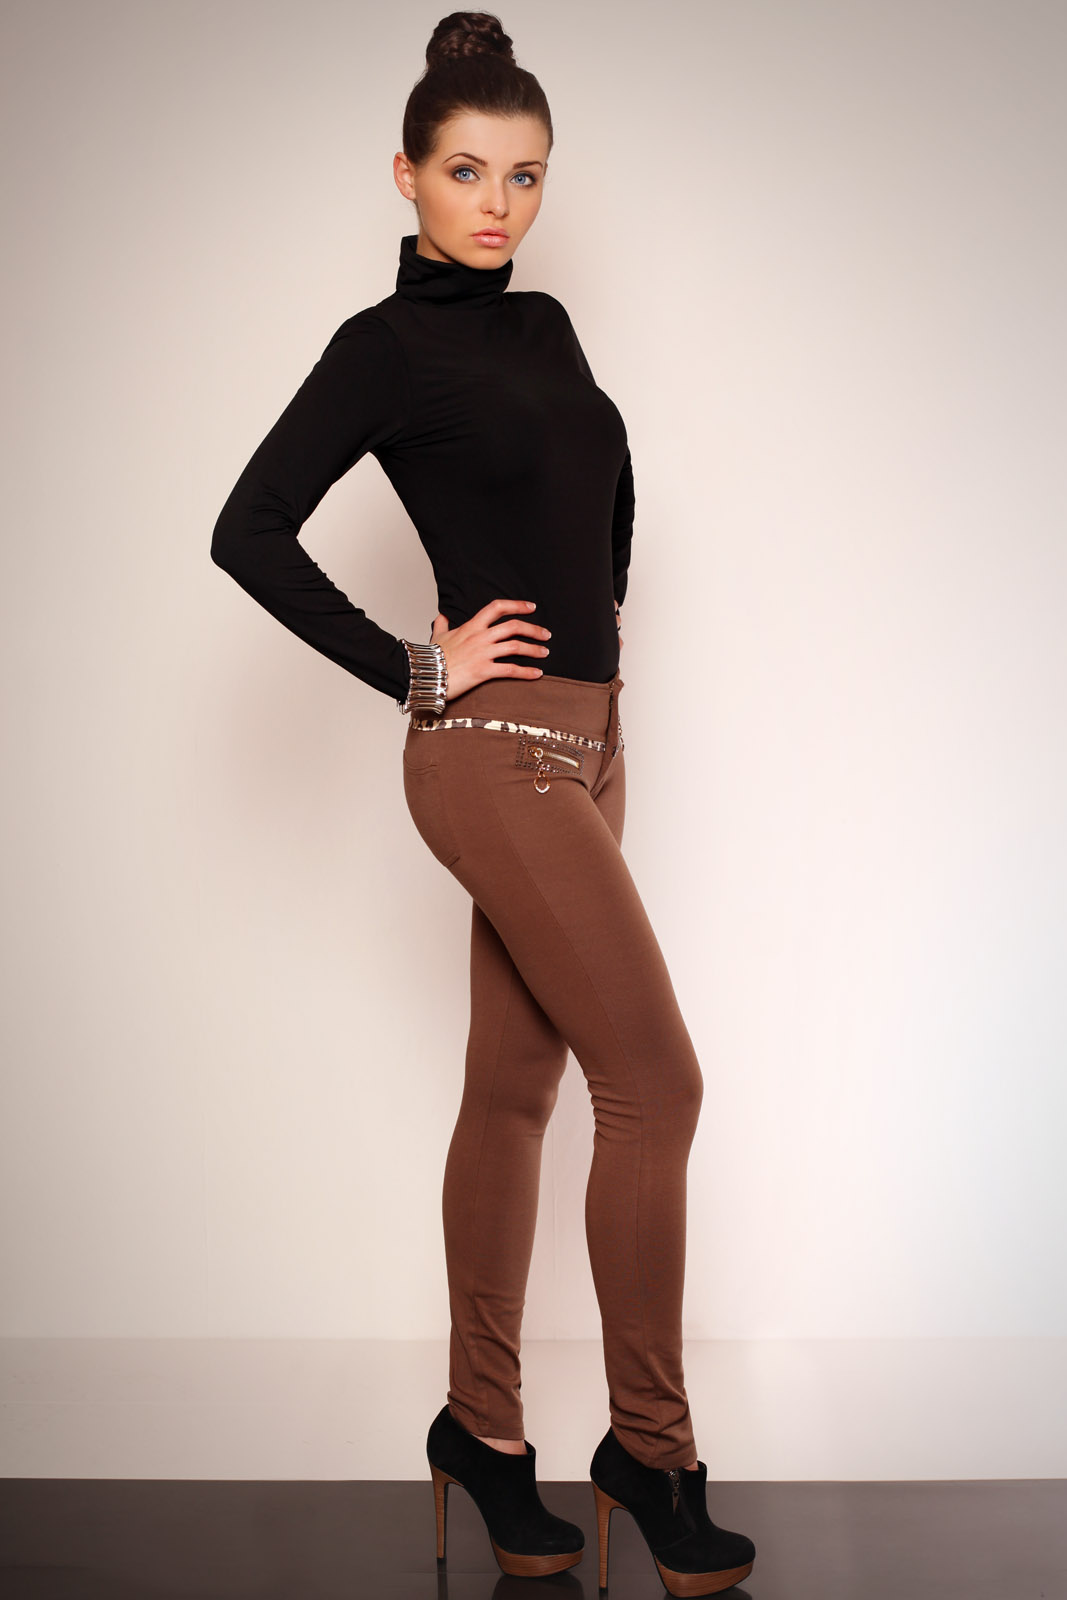 2606-1 Leggings with gold zippers and insertion of camouflage REDIAL - light brown